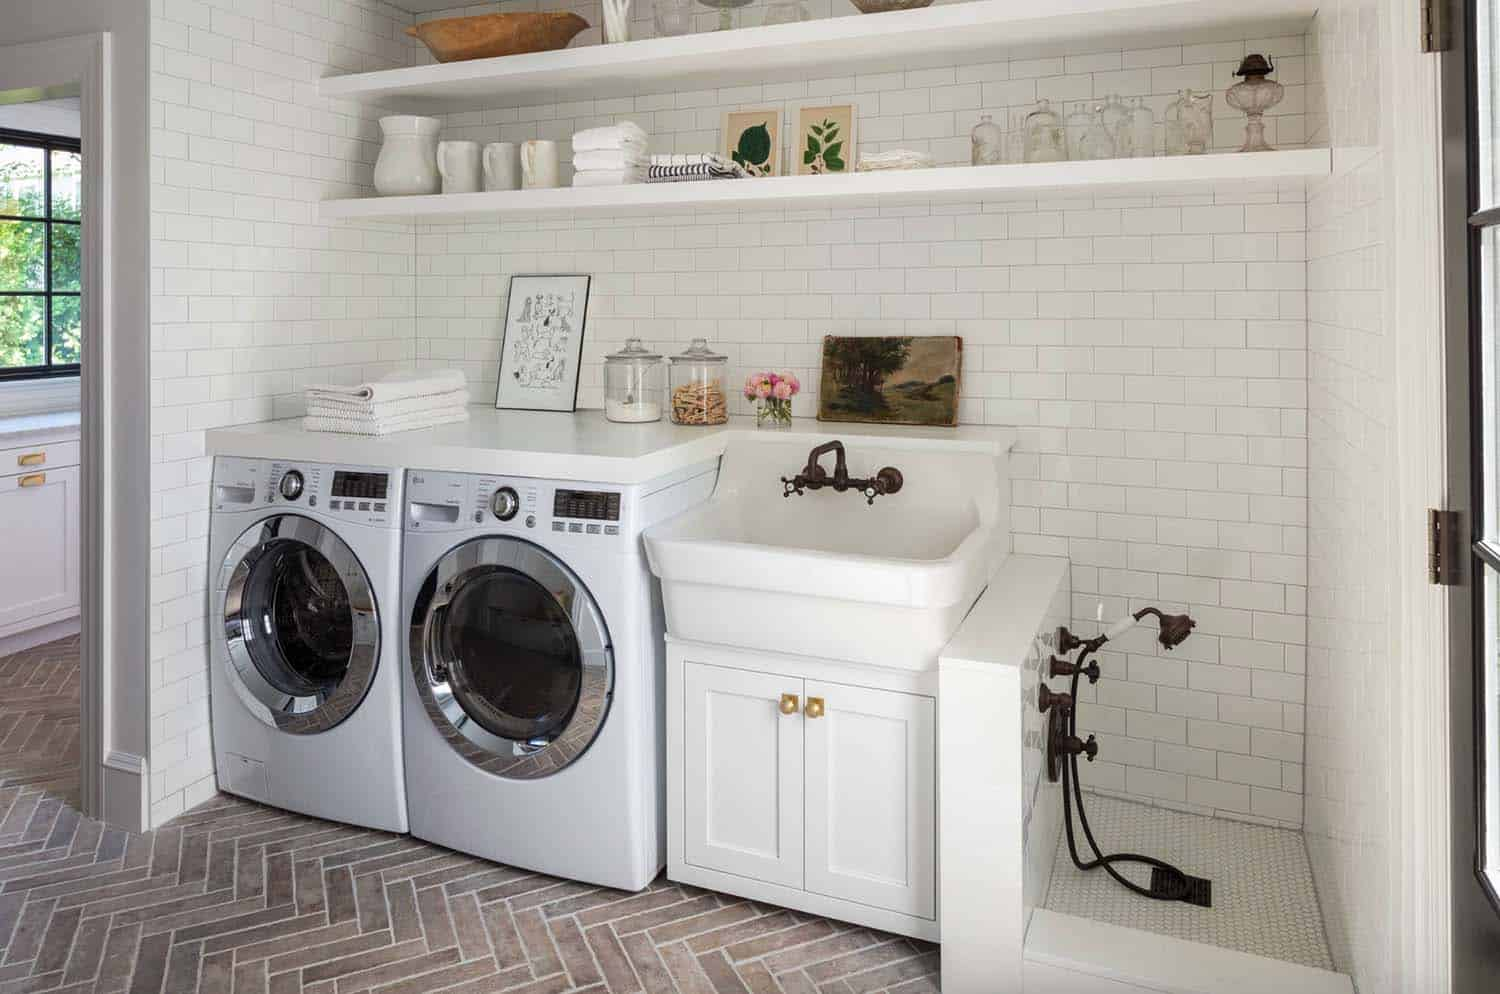 38 functional and stylish laundry room design ideas to inspire - Laundry room design ideas ...